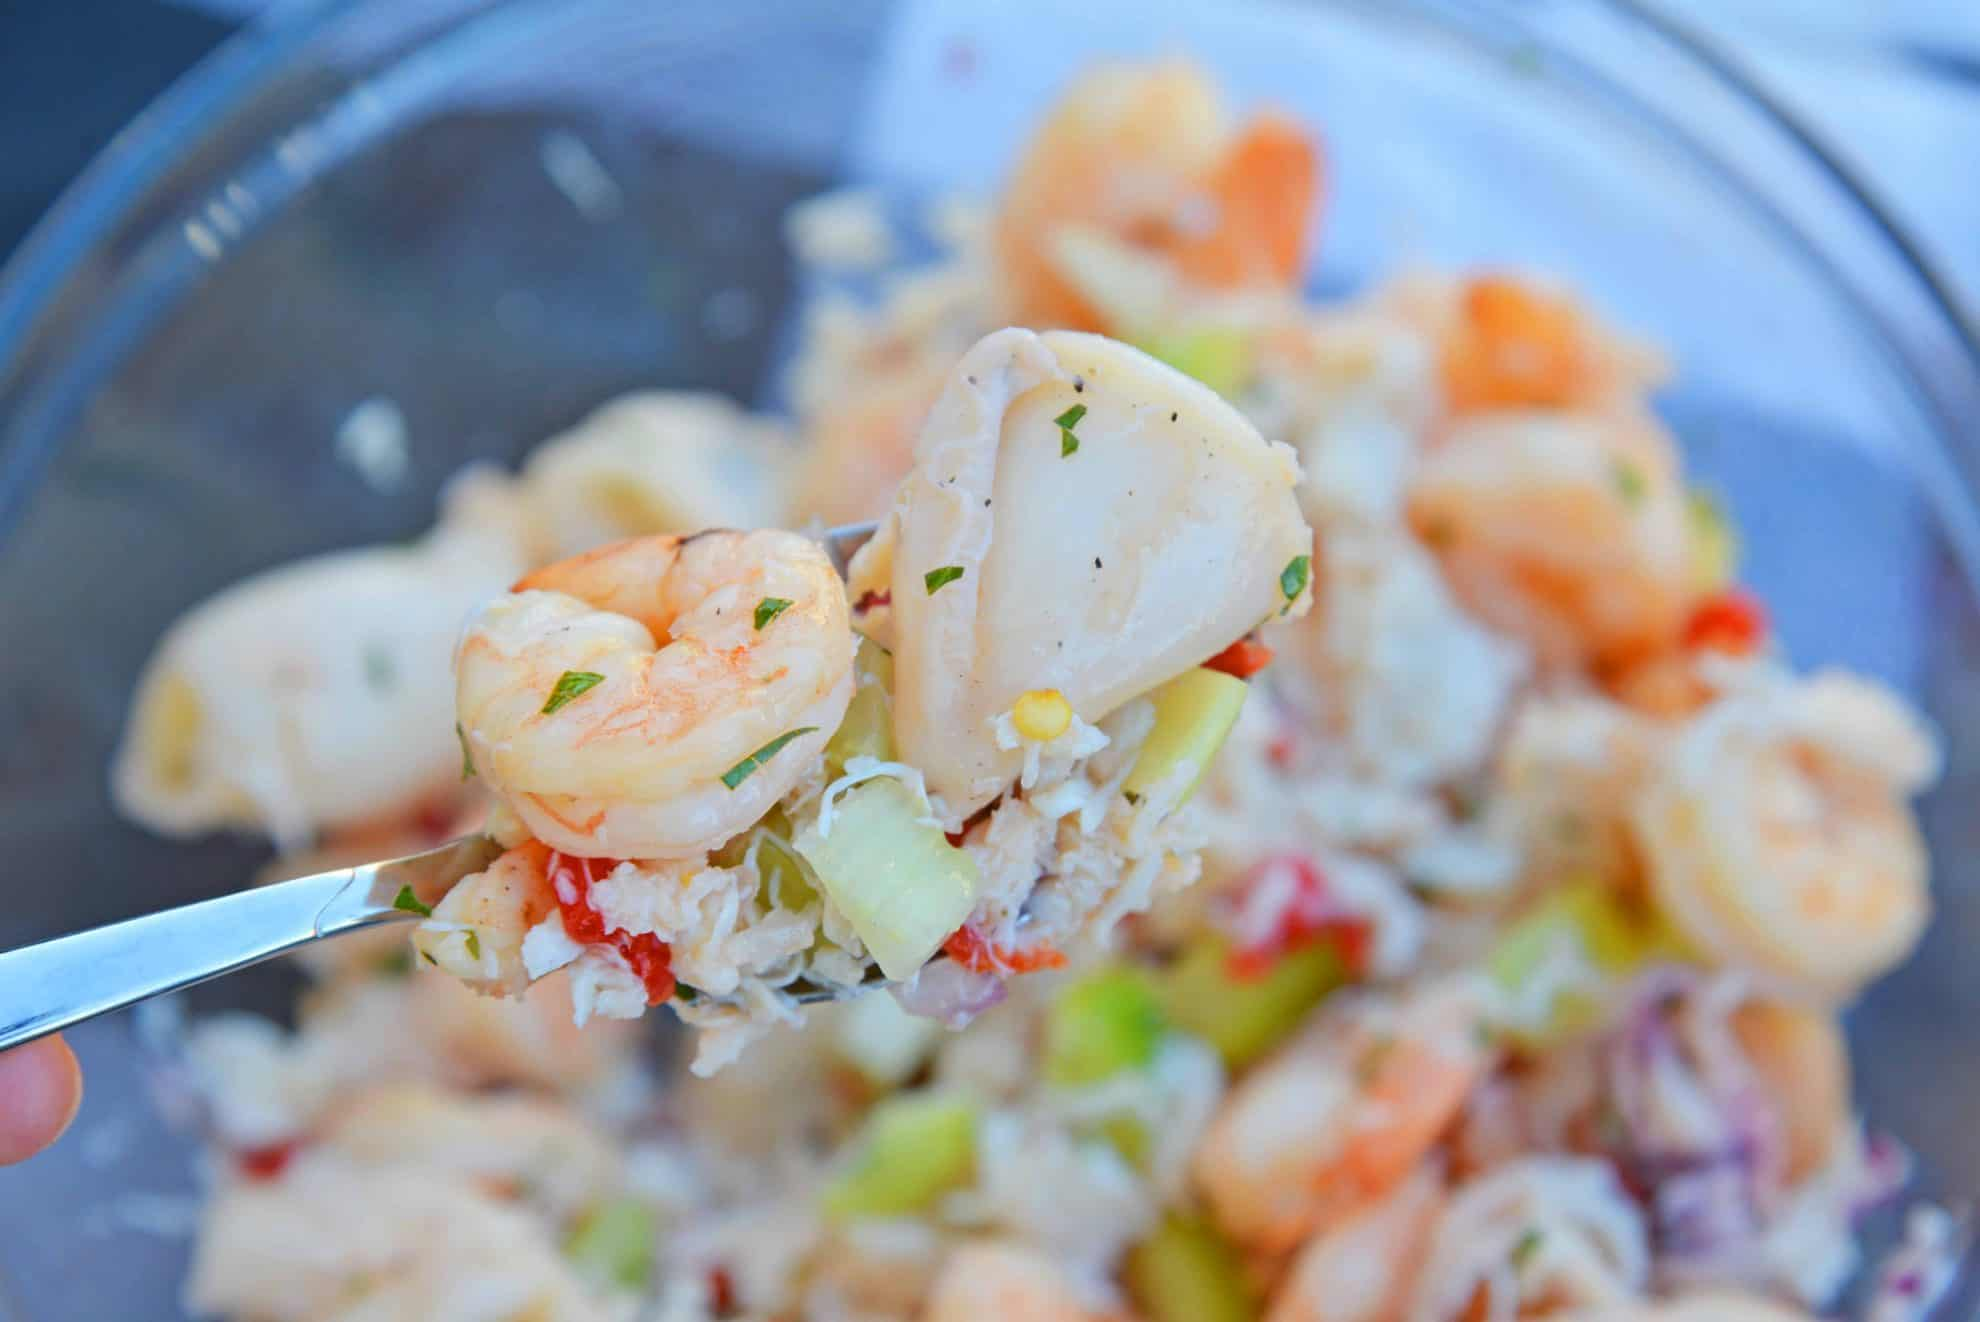 Italian Seafood Salad | How To Make Seafood Salad